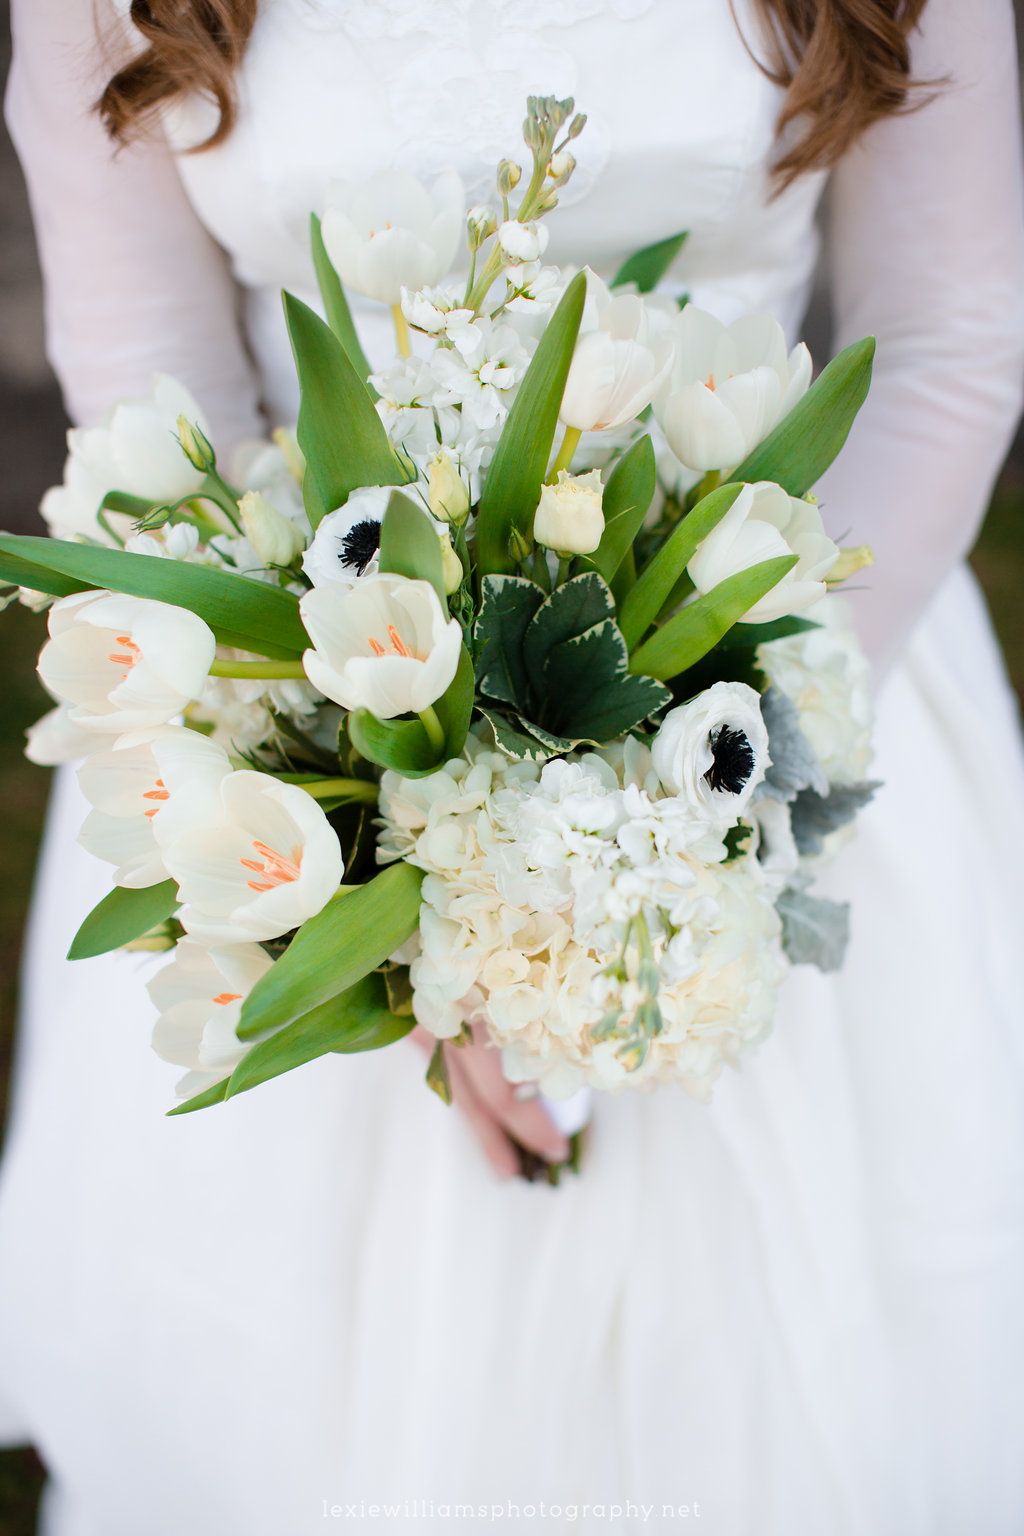 Photo from a fun early March wedding taken by  Lexie Williams Photography . Boquet done by  Camille's Floral .